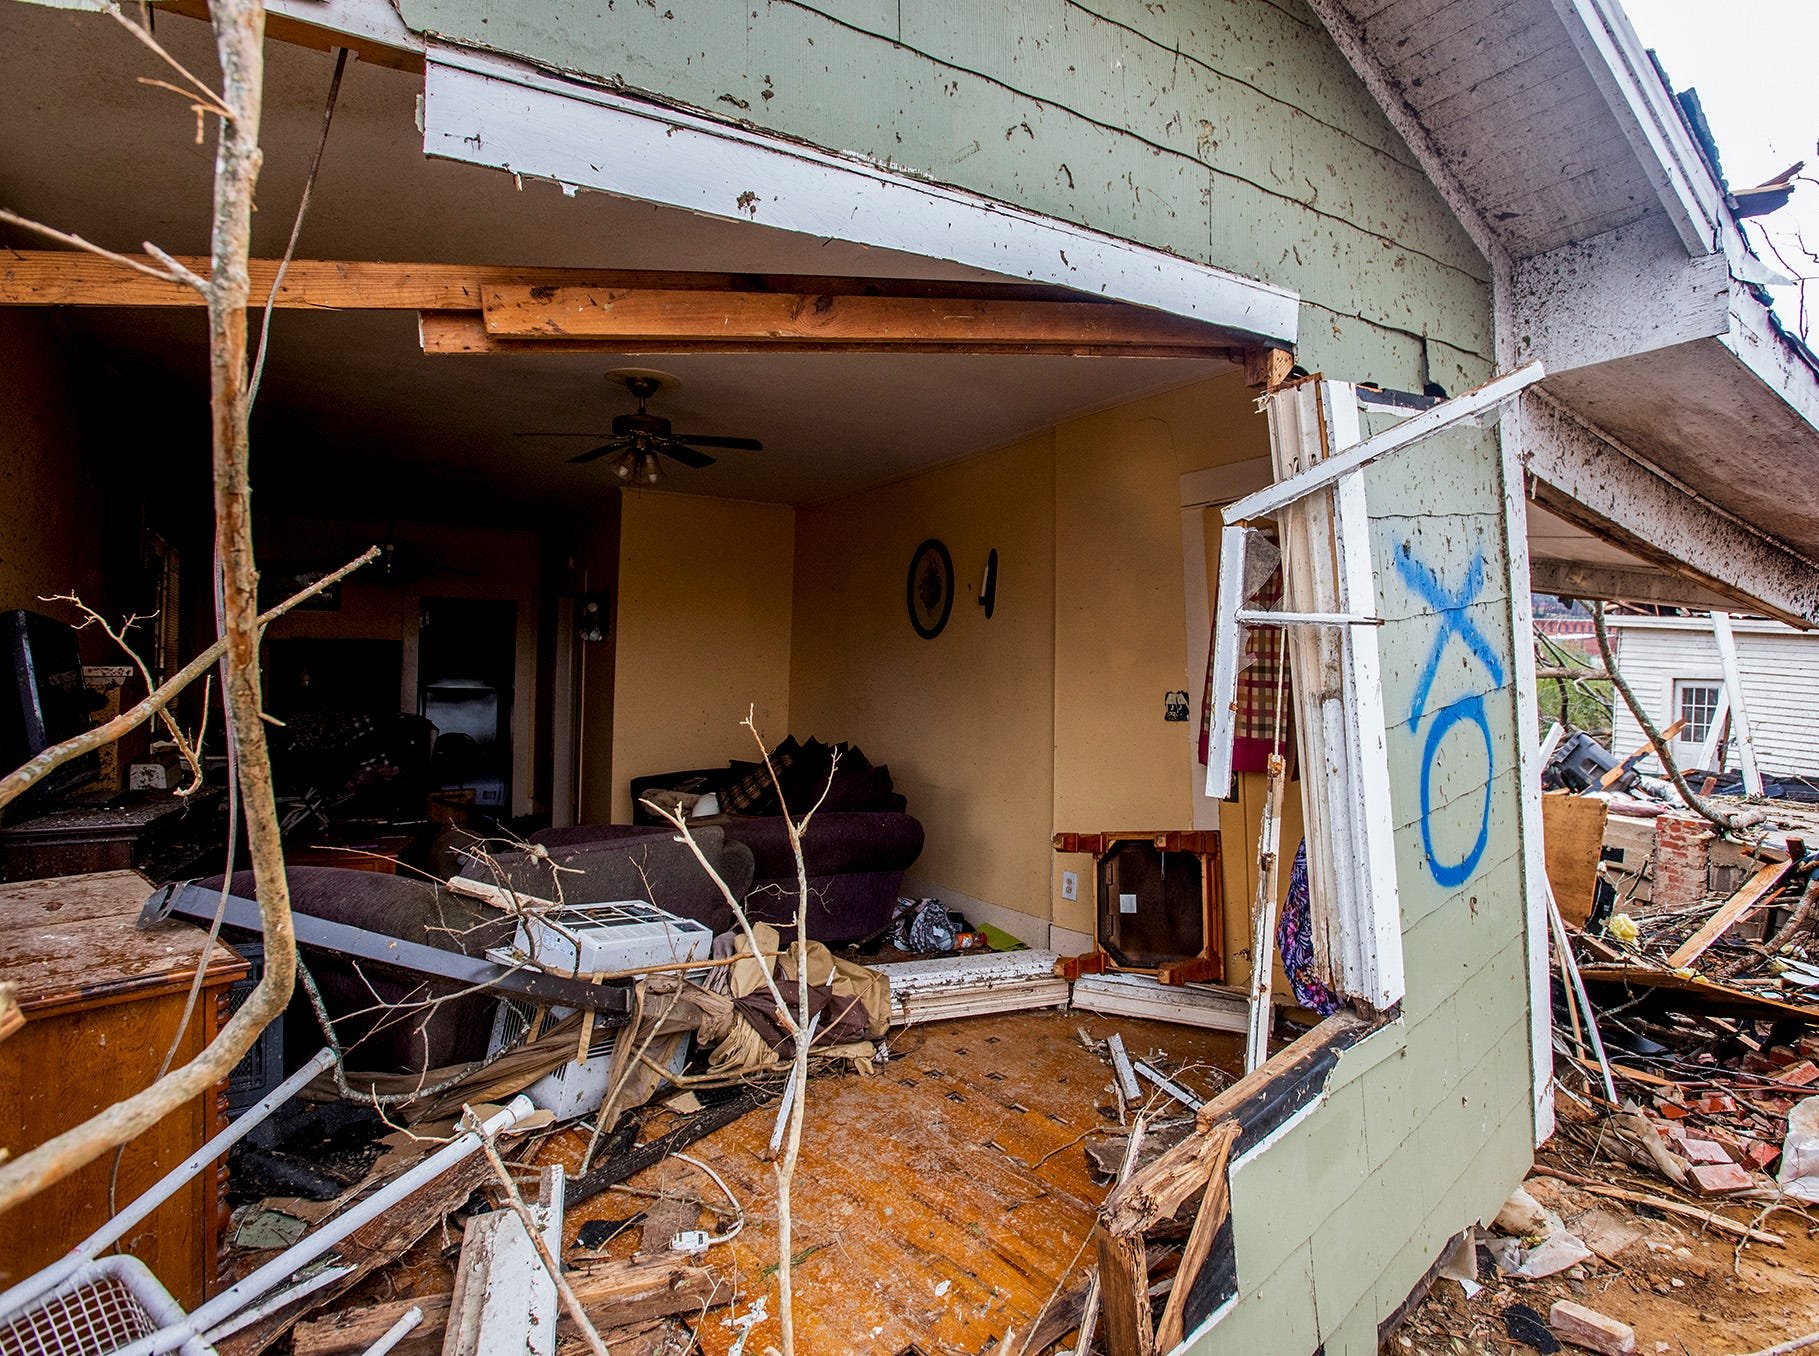 A damaged home on Sunday January 20, 2019, after a tornado hit Wetumpka, Ala., on Saturday afternoon.